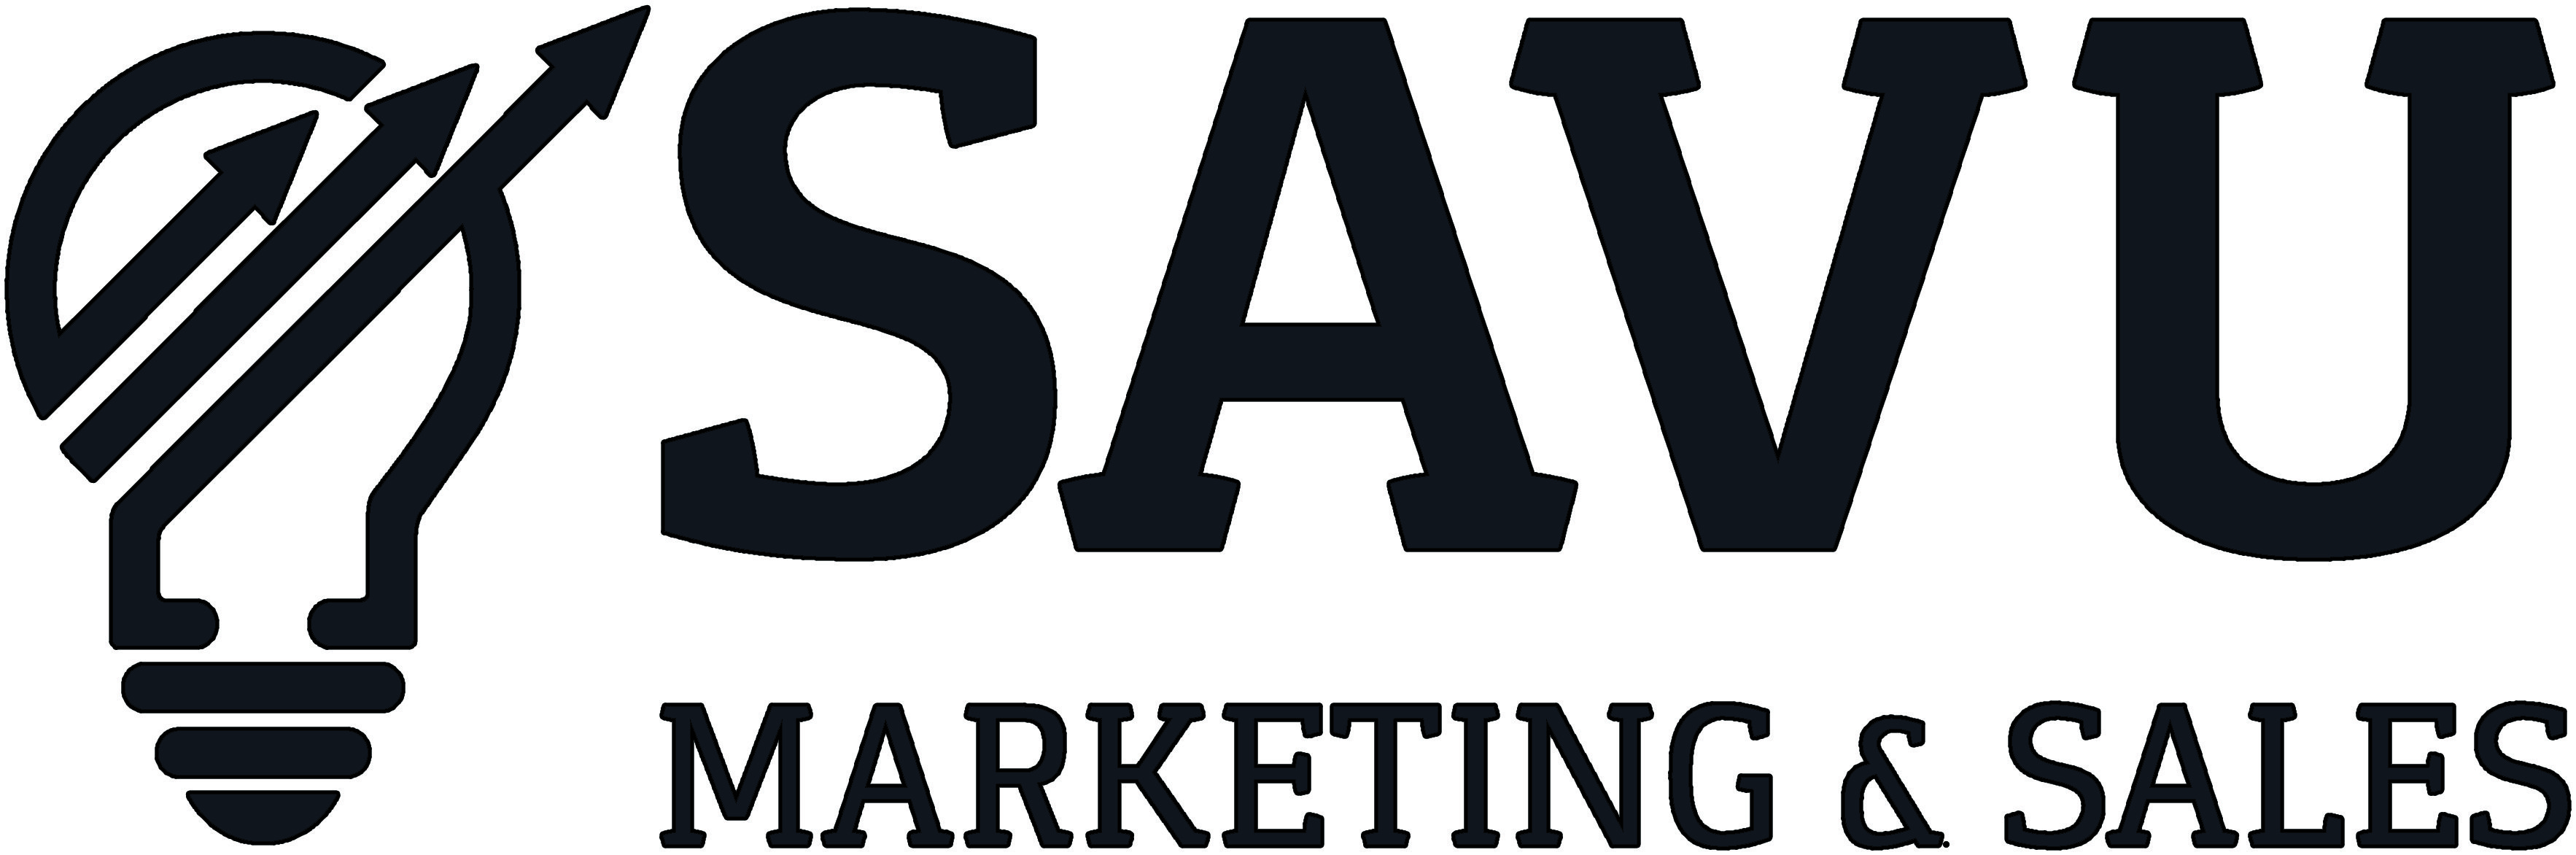 Savu marketing en sales